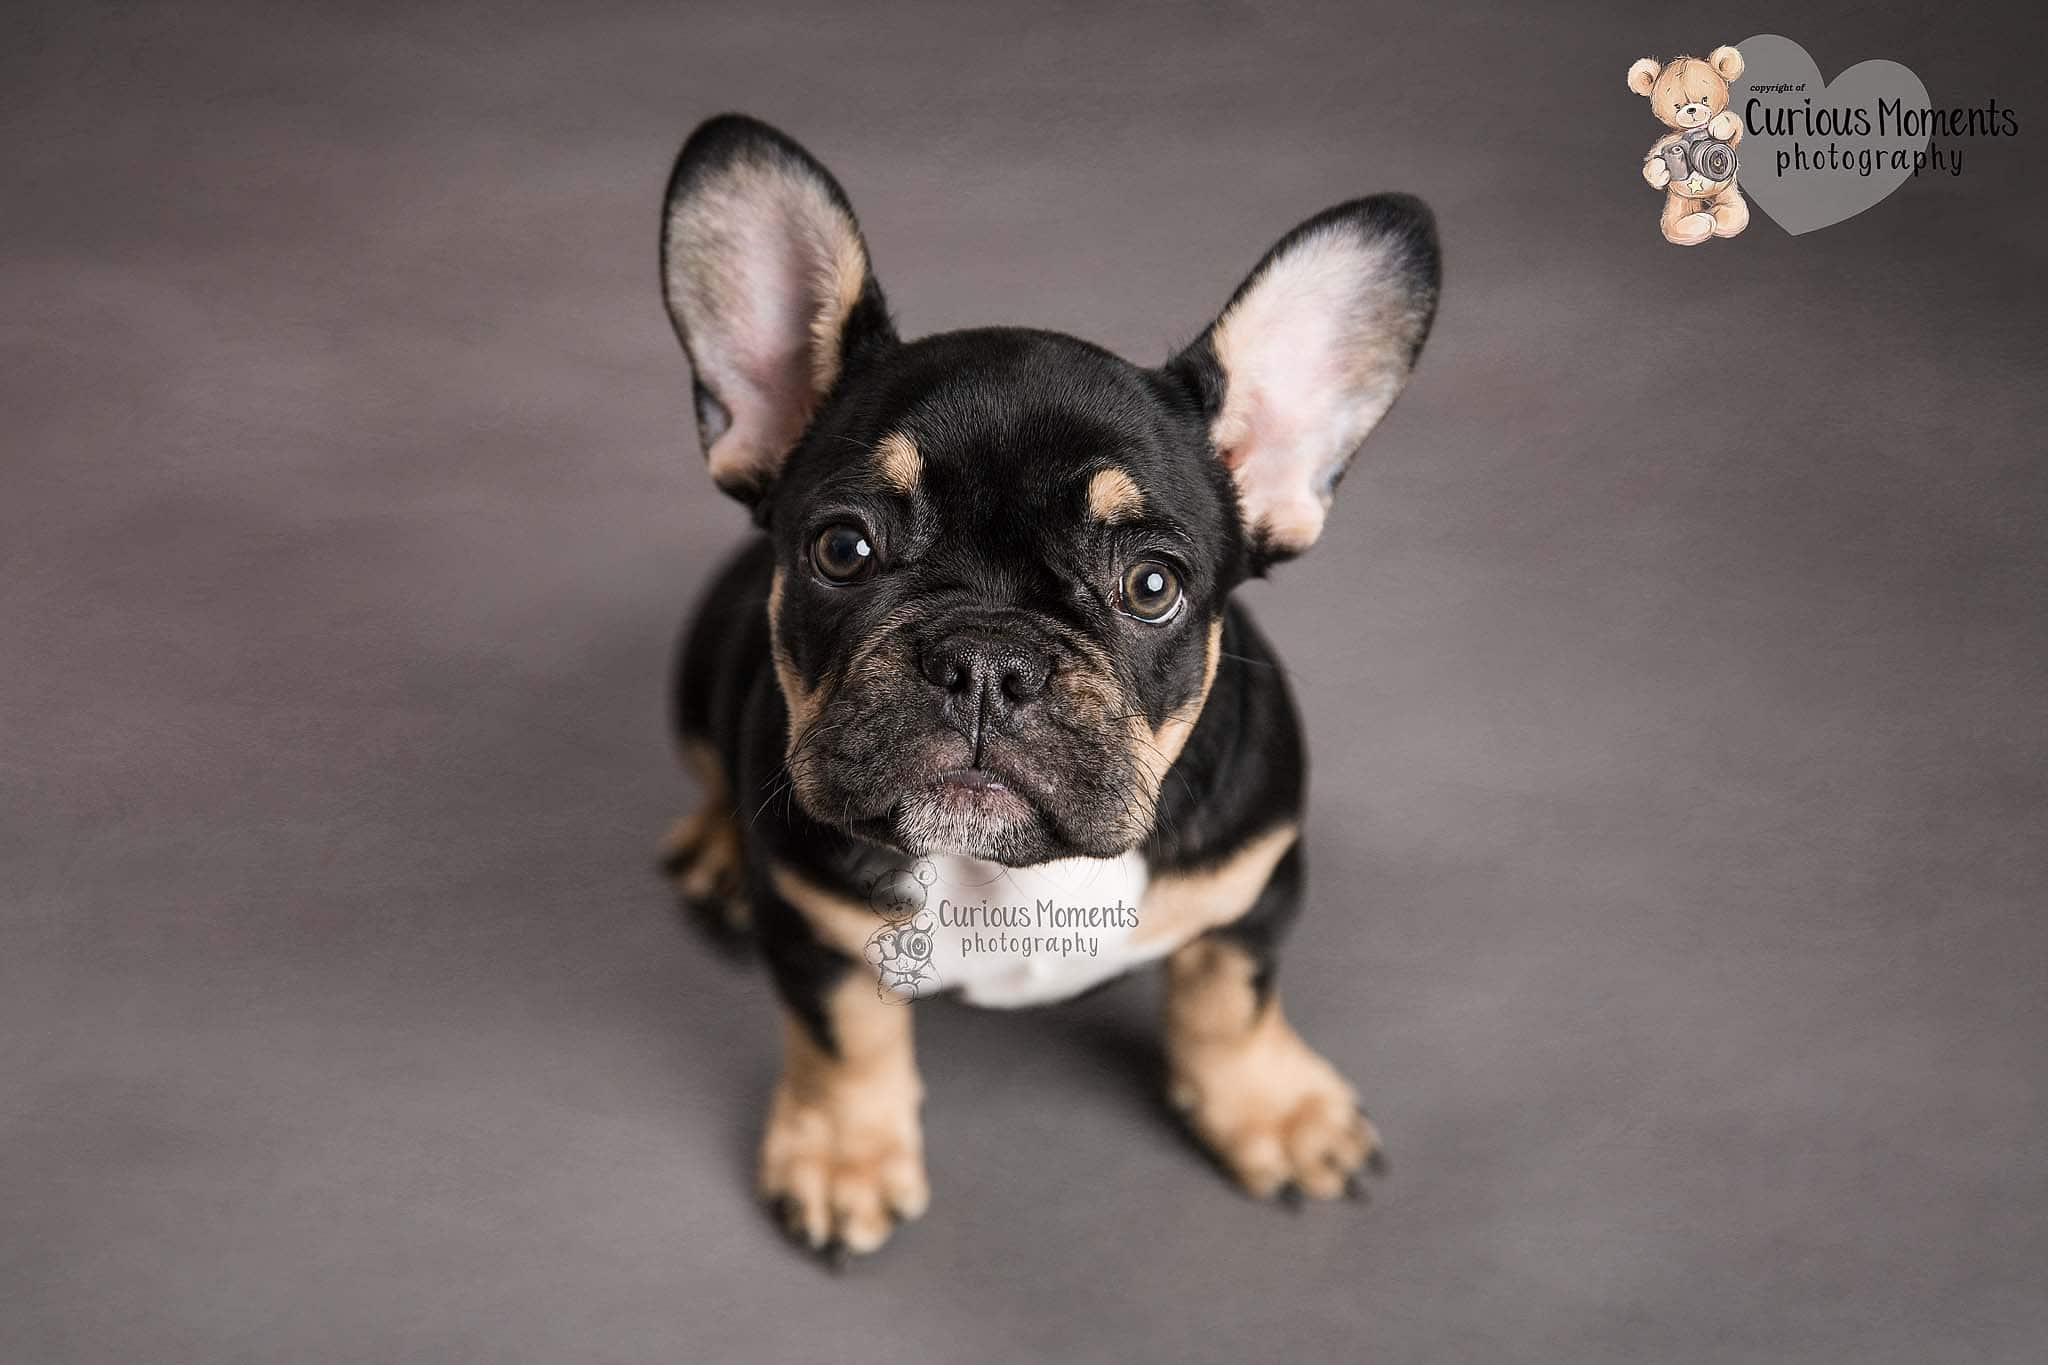 Black tan and white french bulldog puppy sat on grey background for photo shoot